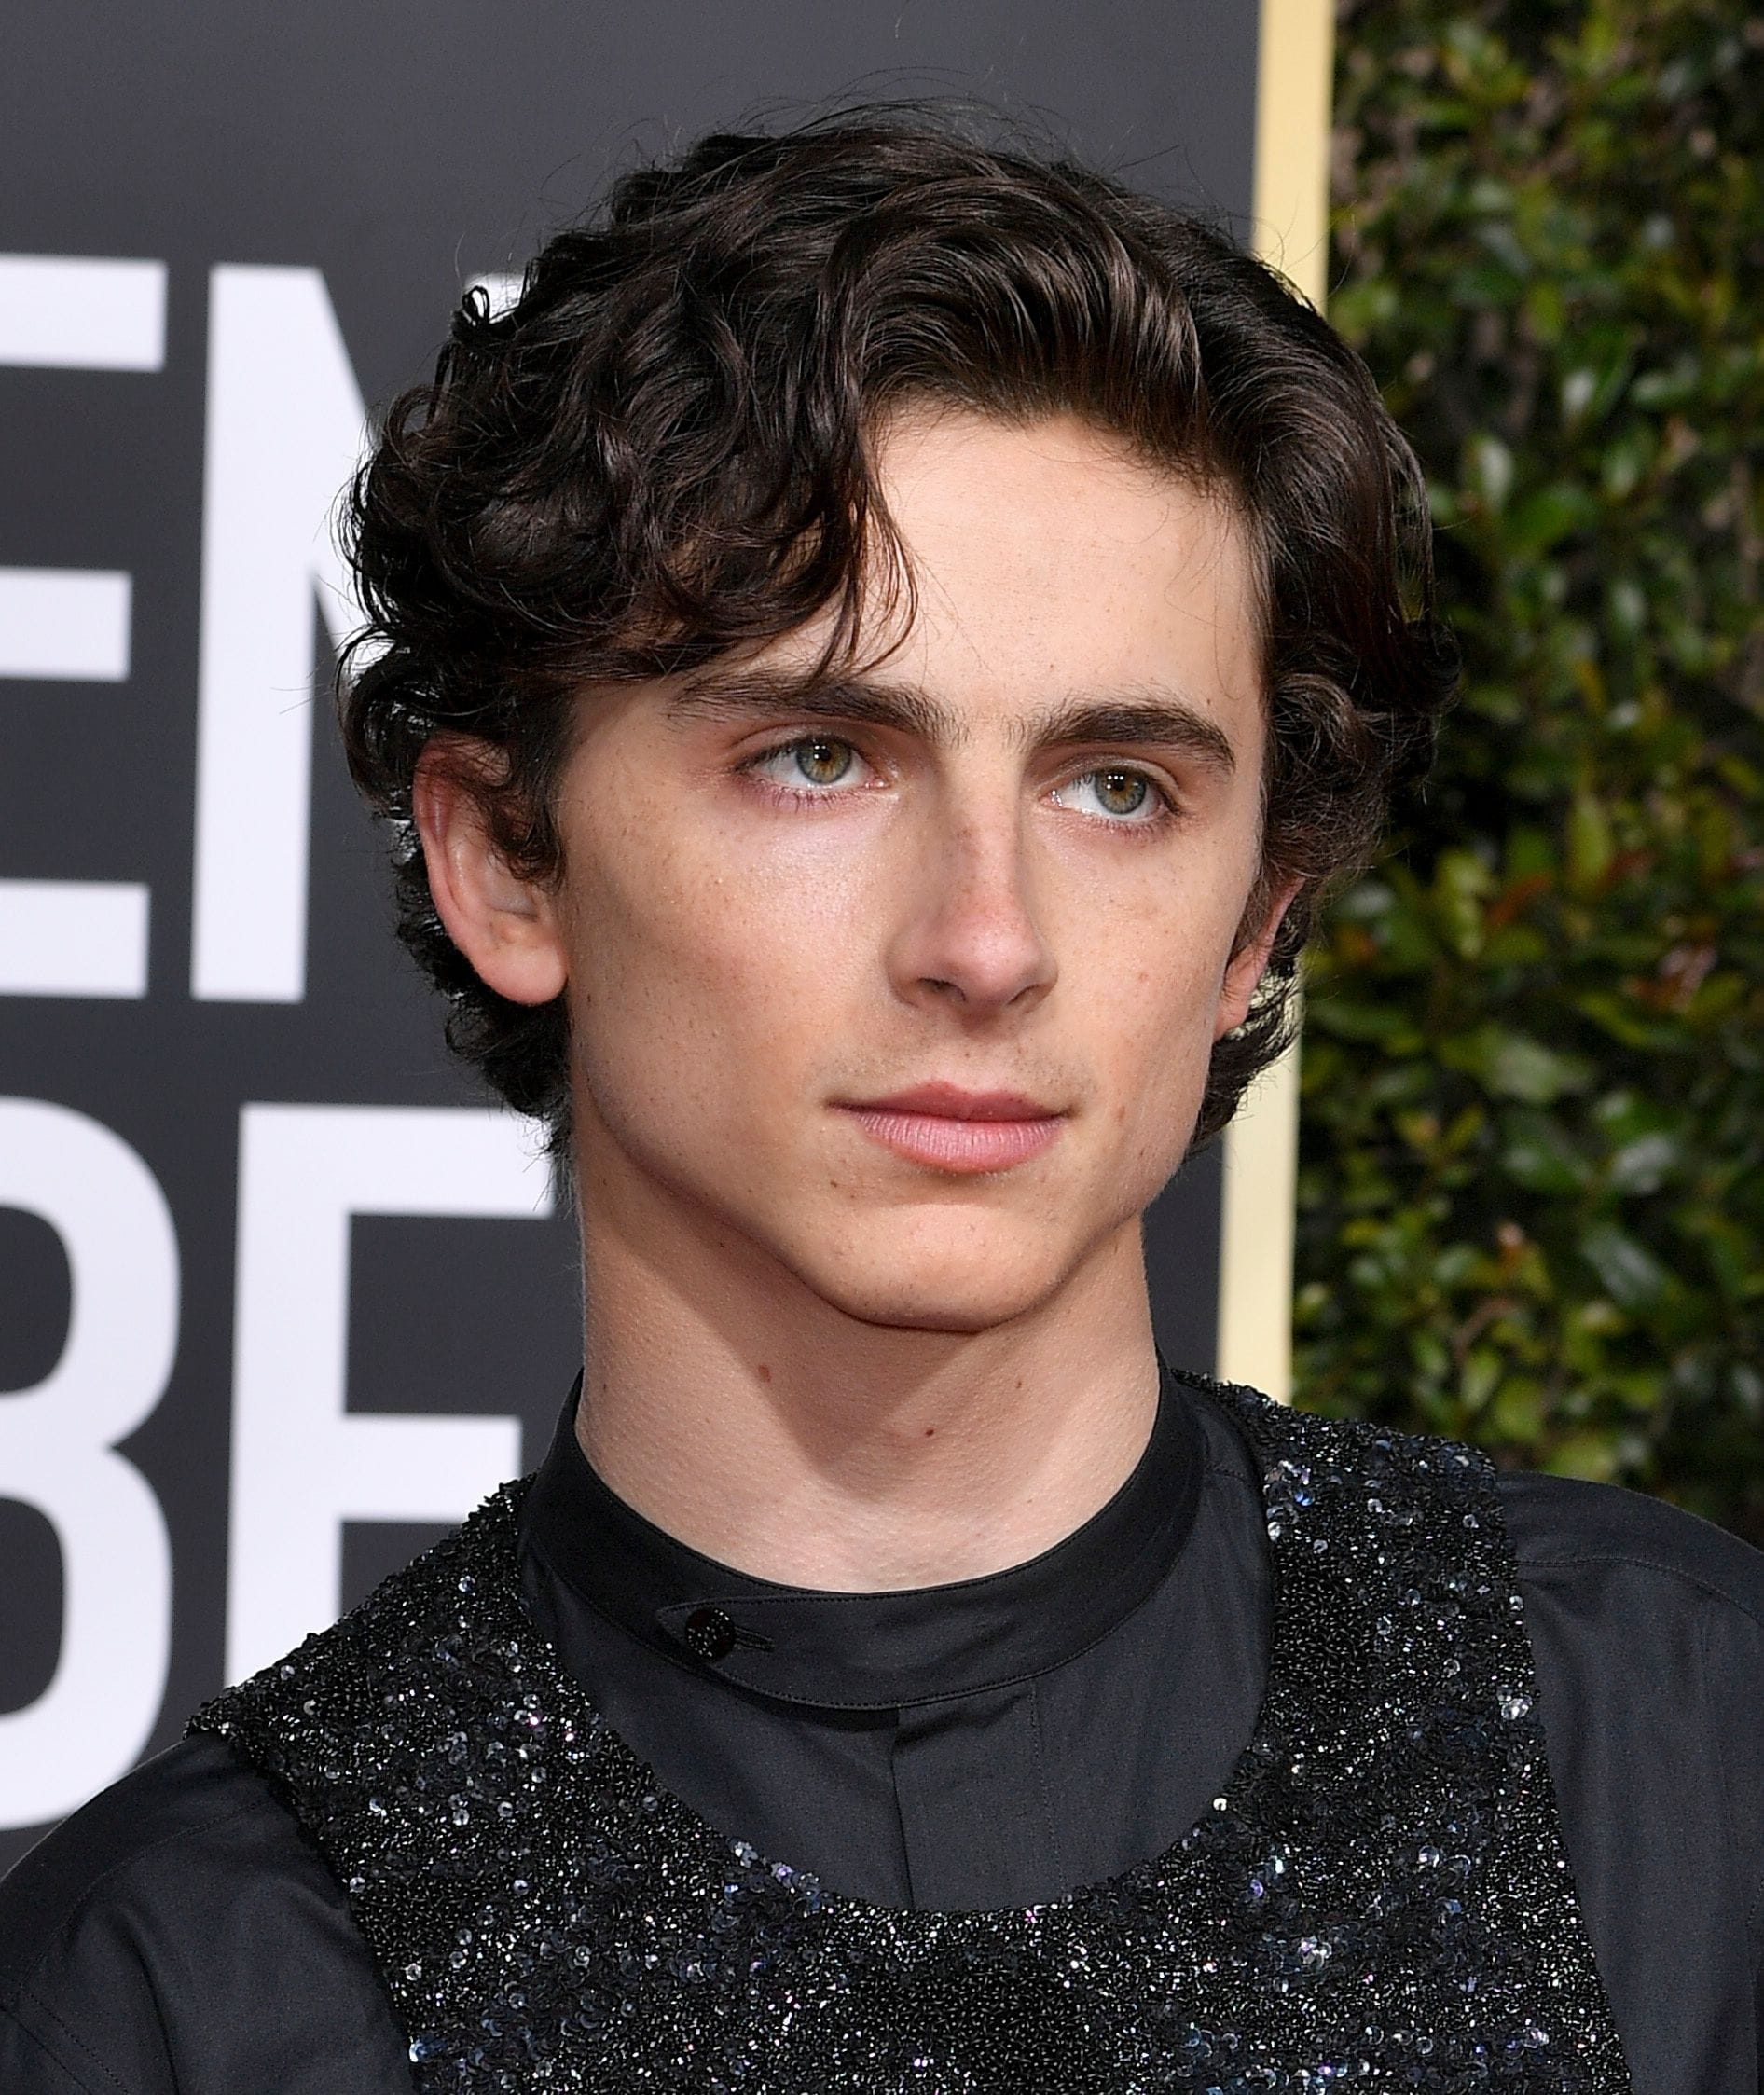 Golden Globes 2019: Close-up of Timothée Chalamet with dark wavy hair